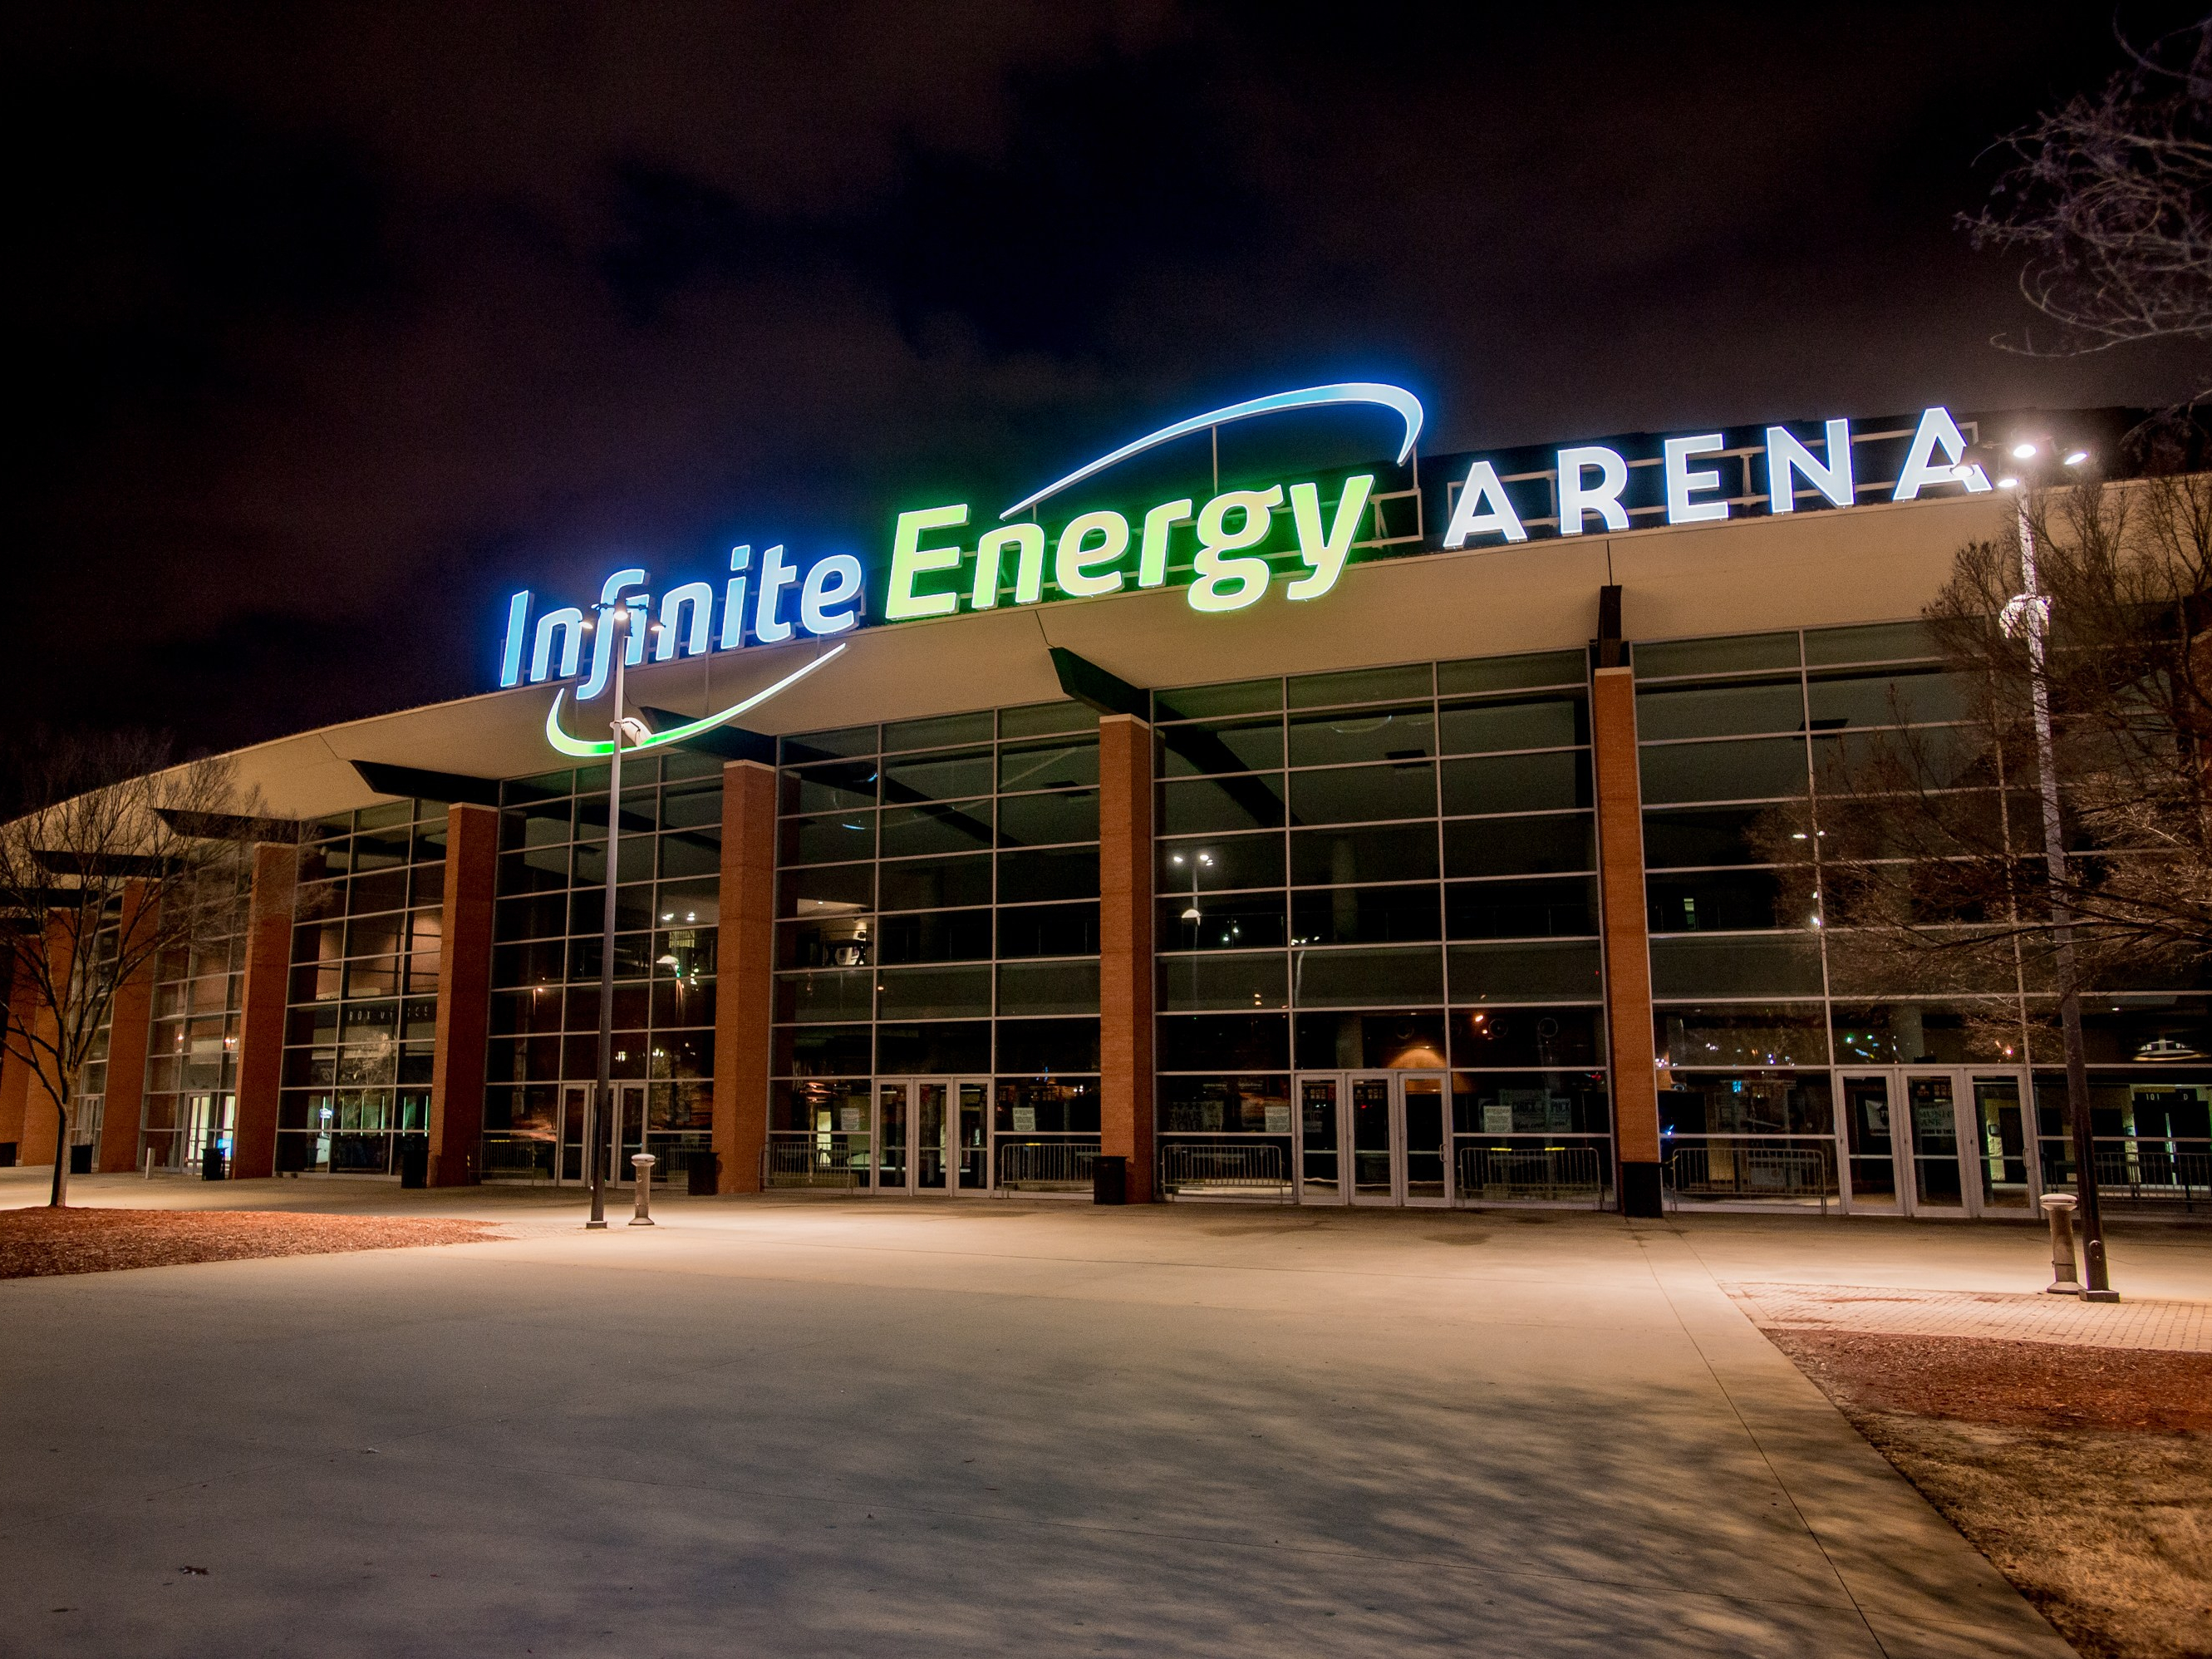 Photo of Infinite Energy Arena (Georgia Swarm photo)